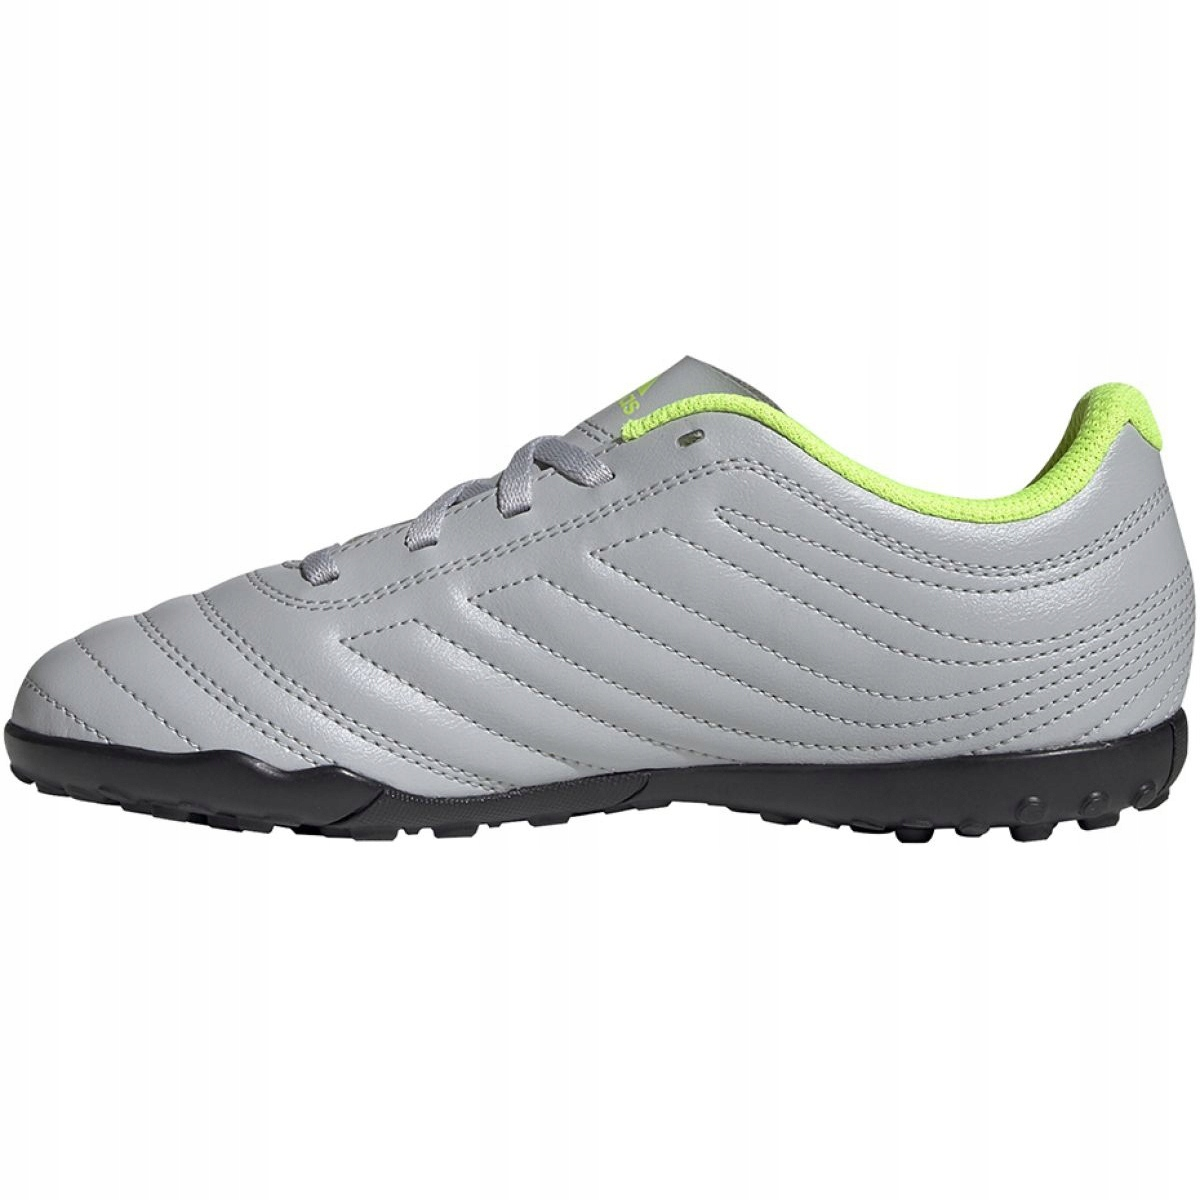 adidas X Country Zip shoes silvergrey